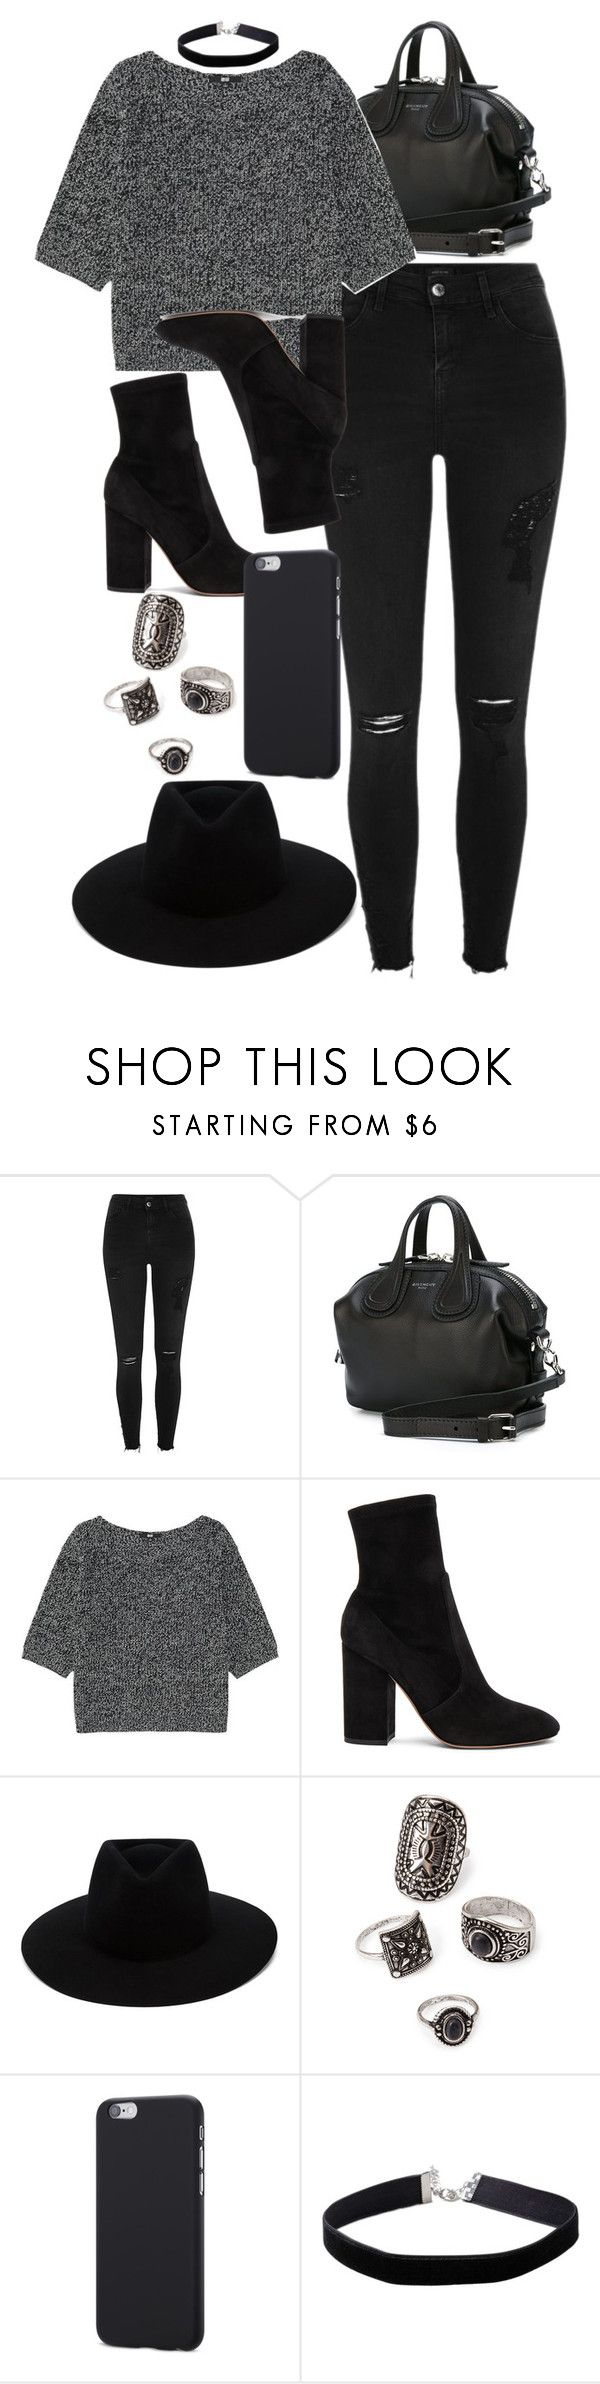 """""""Style #11533"""" by vany-alvarado ❤ liked on Polyvore featuring River Island, Givenchy, Uniqlo, Valentino, rag & bone, Forever 21 and Miss Selfridge"""